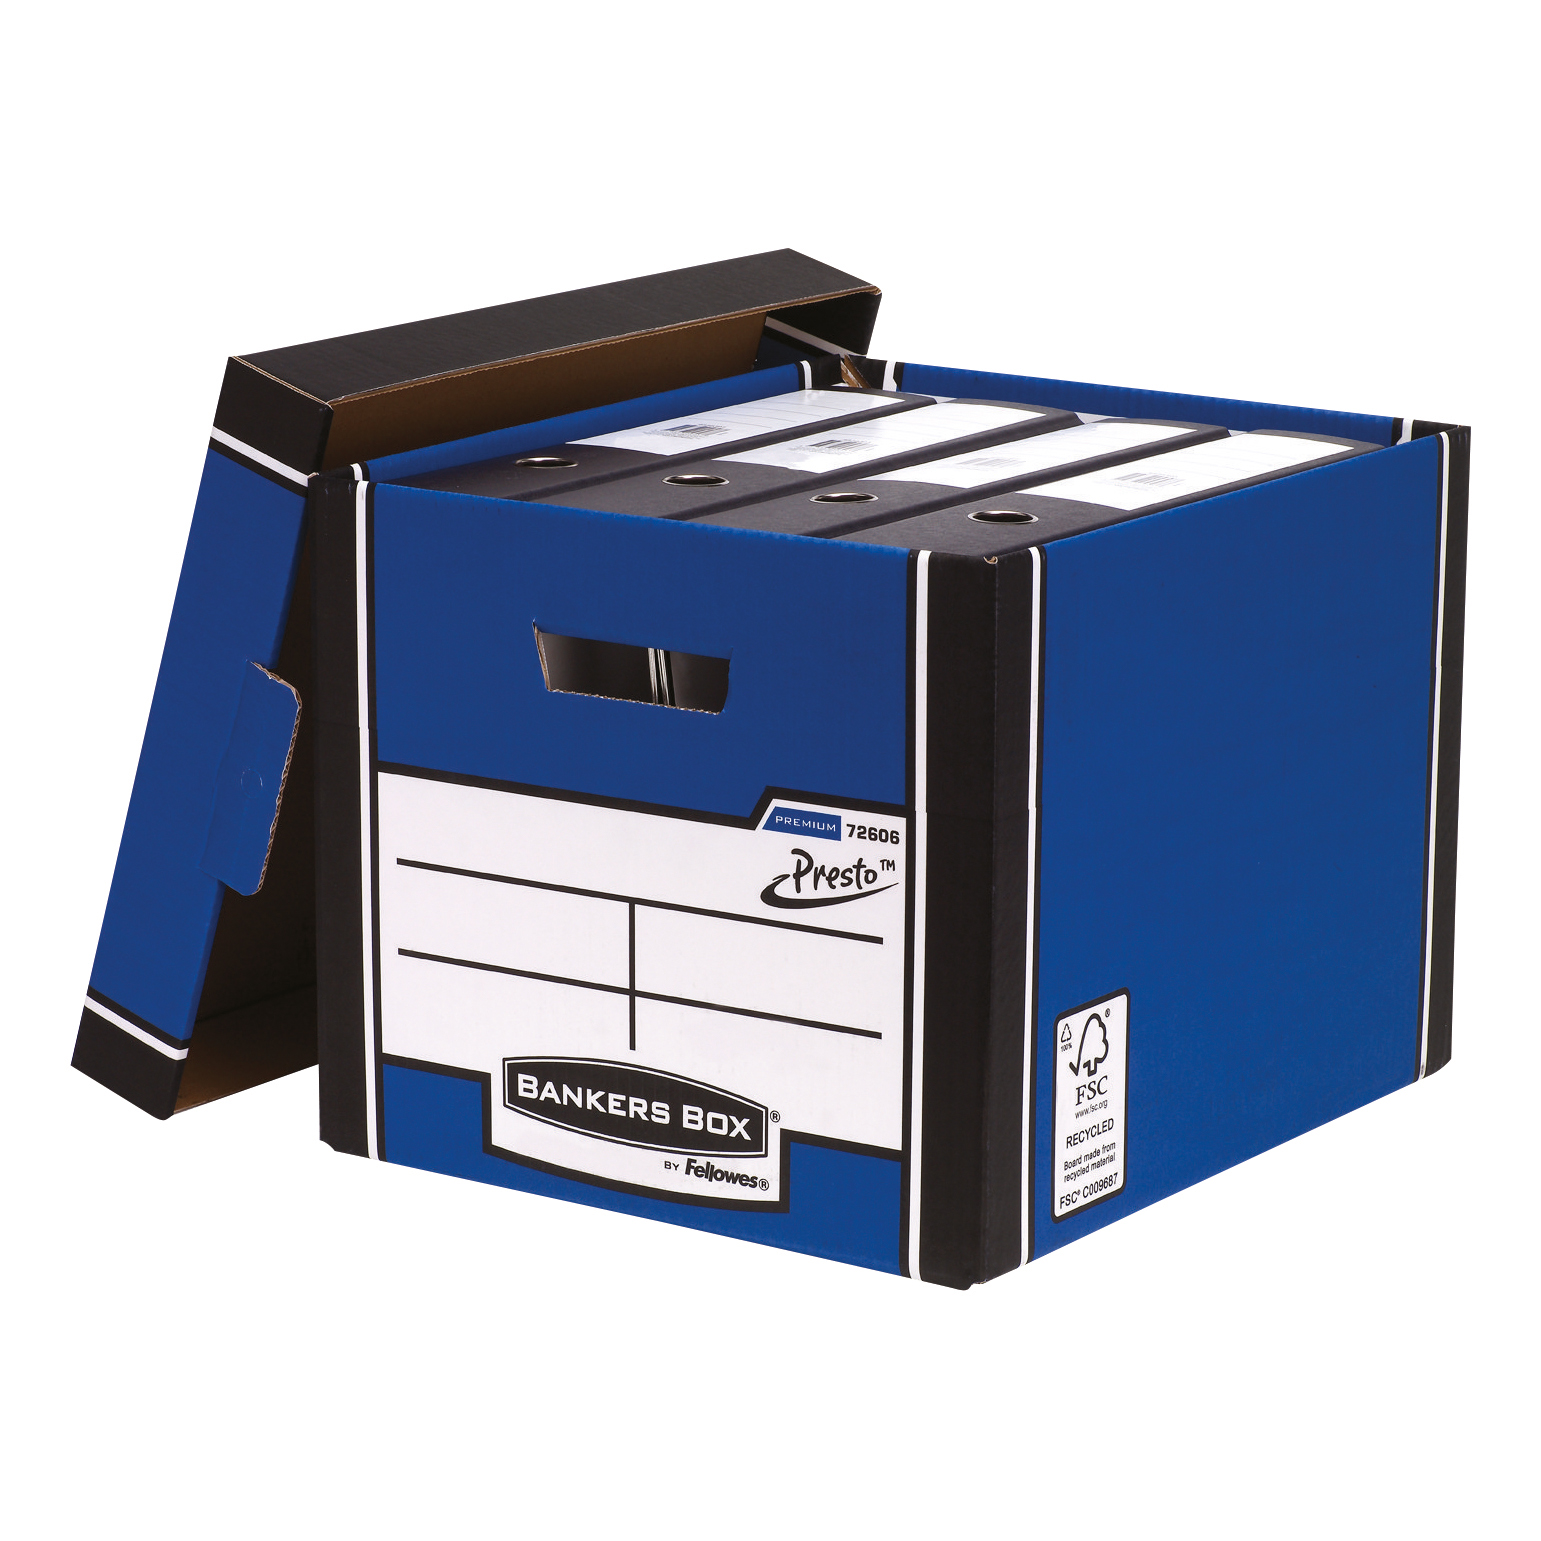 Bankers Box Premium Storage Box (Presto) Tall Blue FSC Ref 7260602 Pack 10